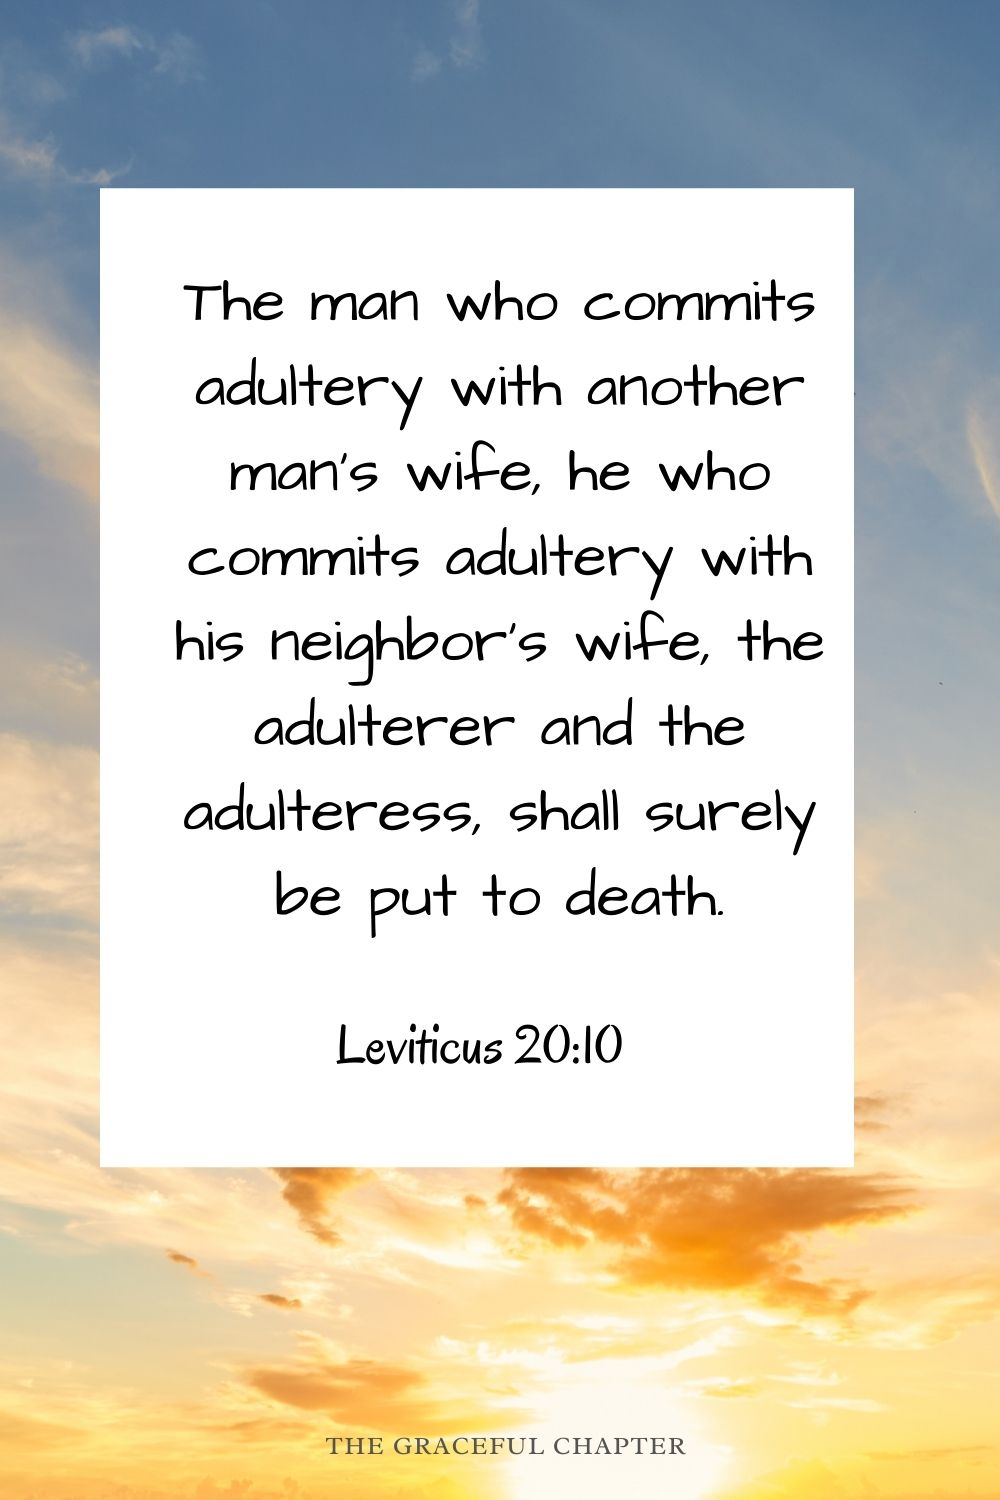 The man who commits adultery with another man's wife, he who commits adultery with his neighbor's wife, the adulterer and the adulteress, shall surely be put to death. Leviticus 20:10